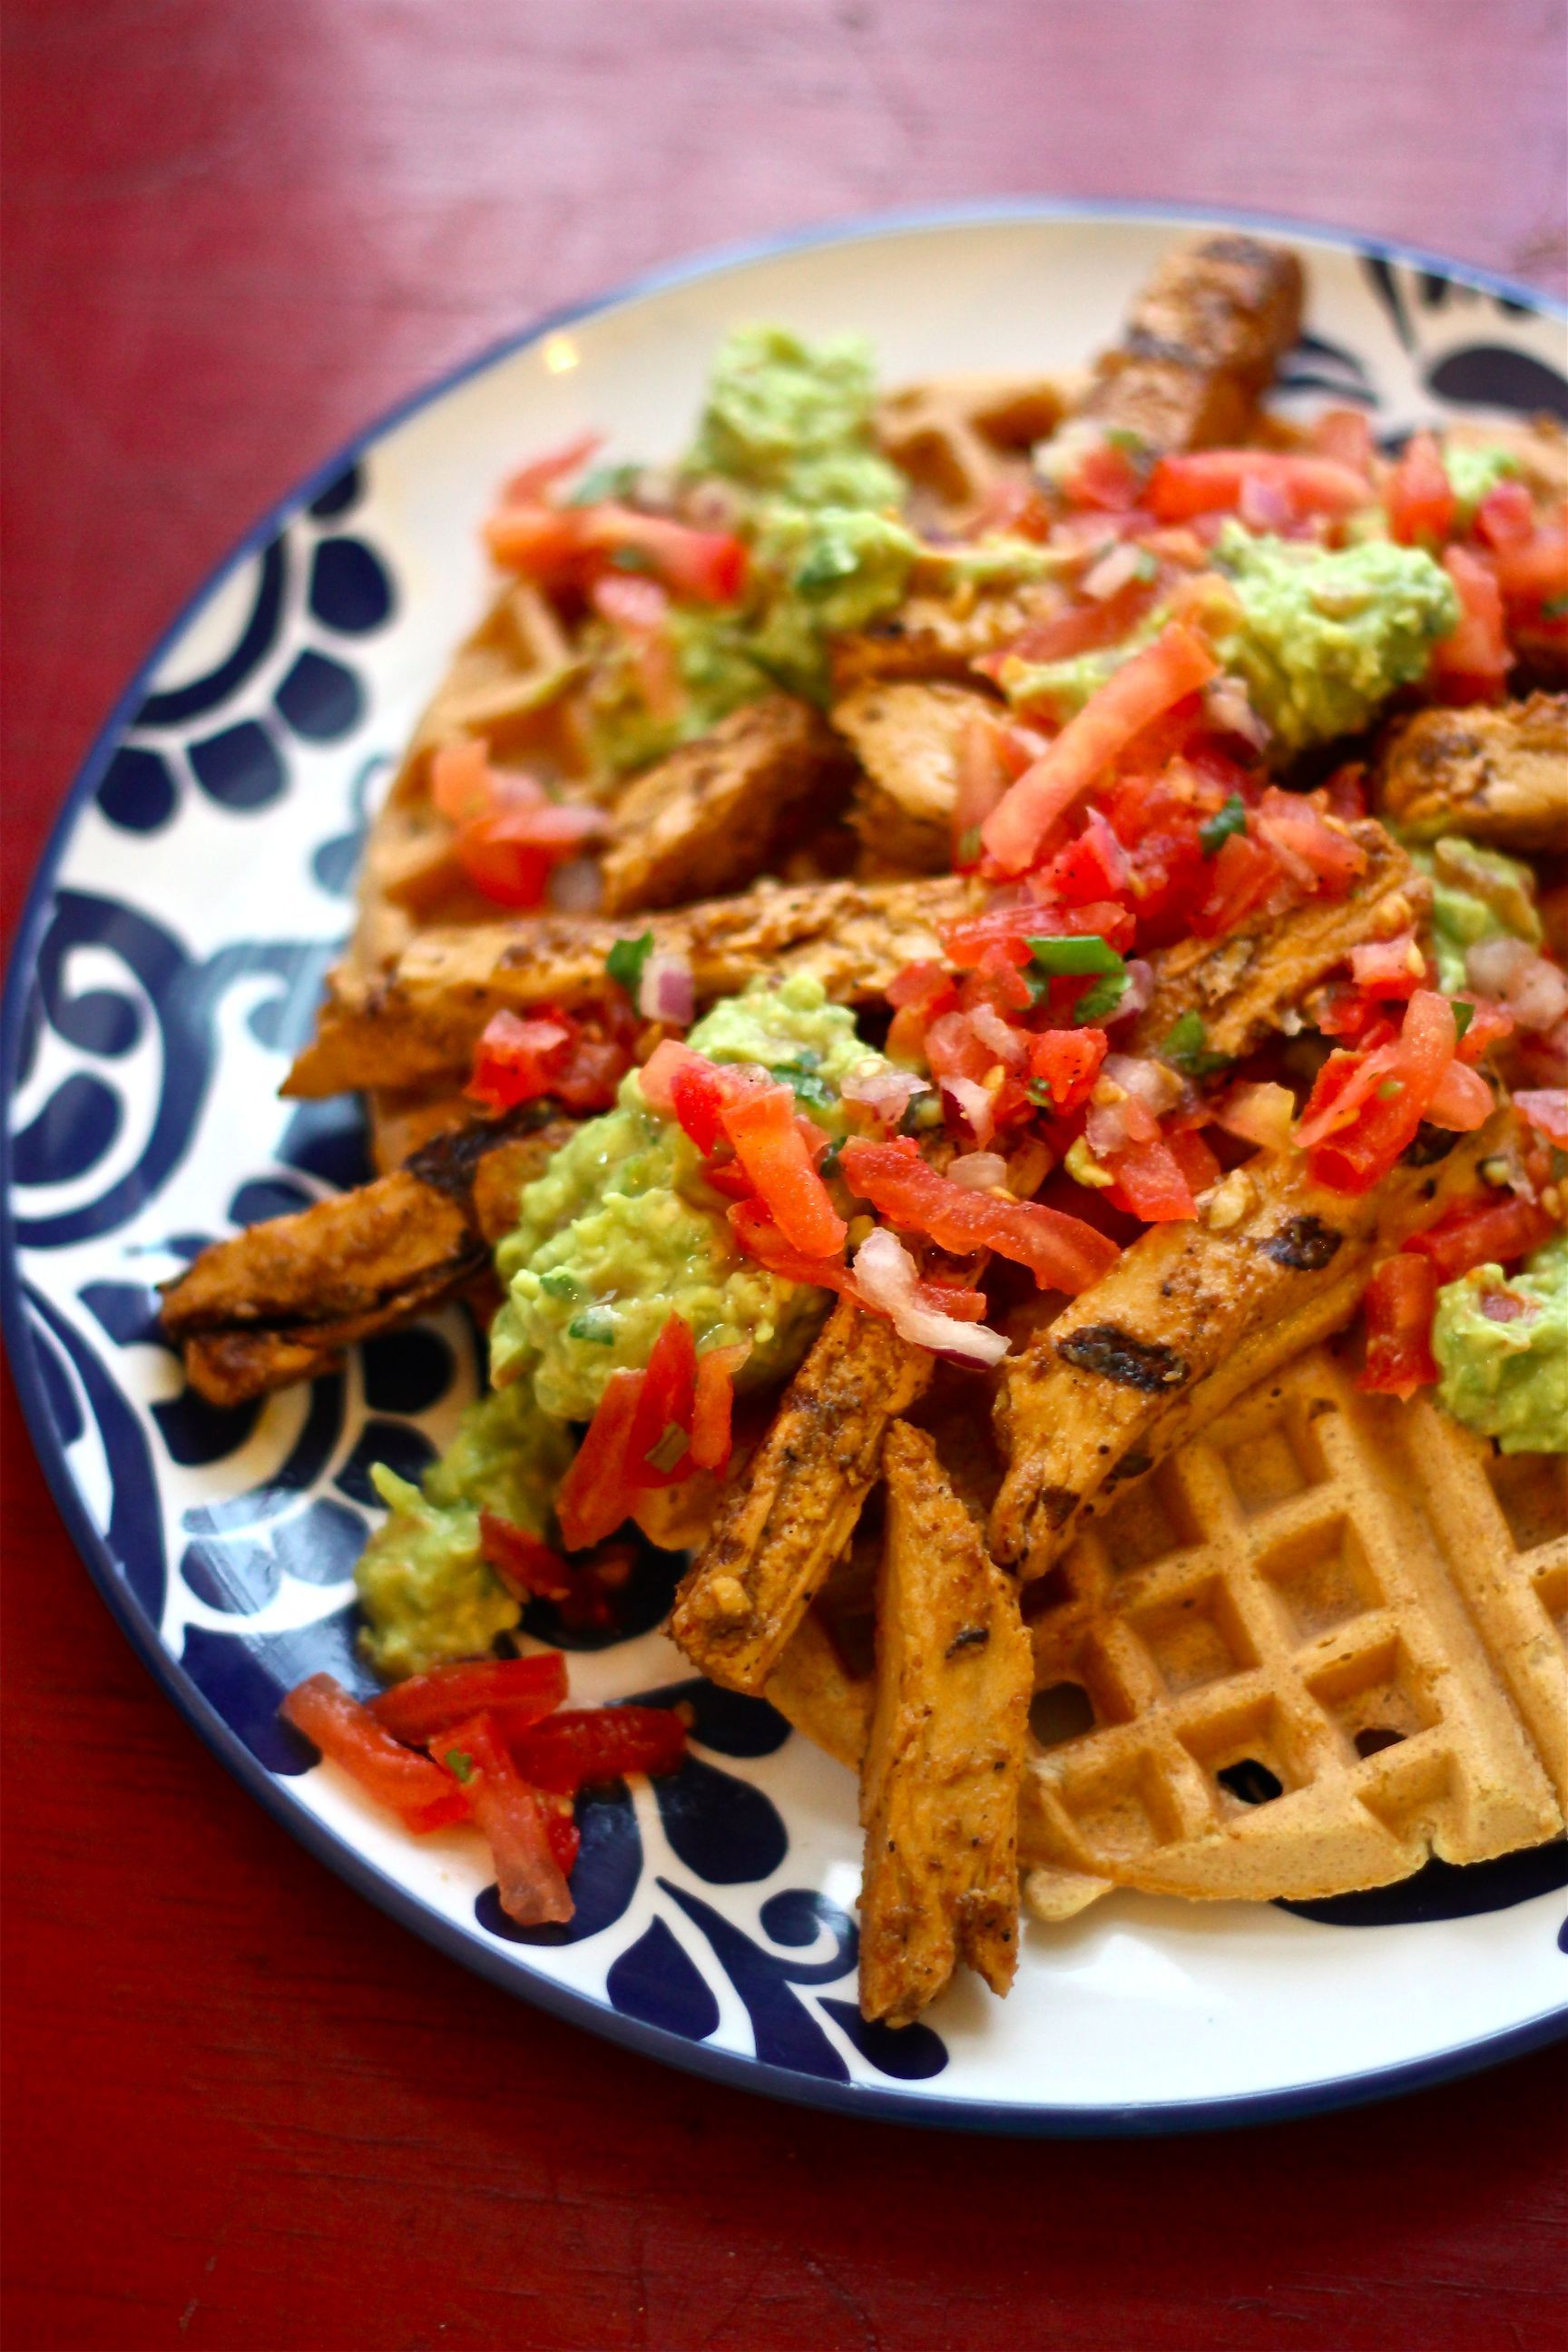 Vegan Mexican Chicken & Waffles (With images) Vegetarian